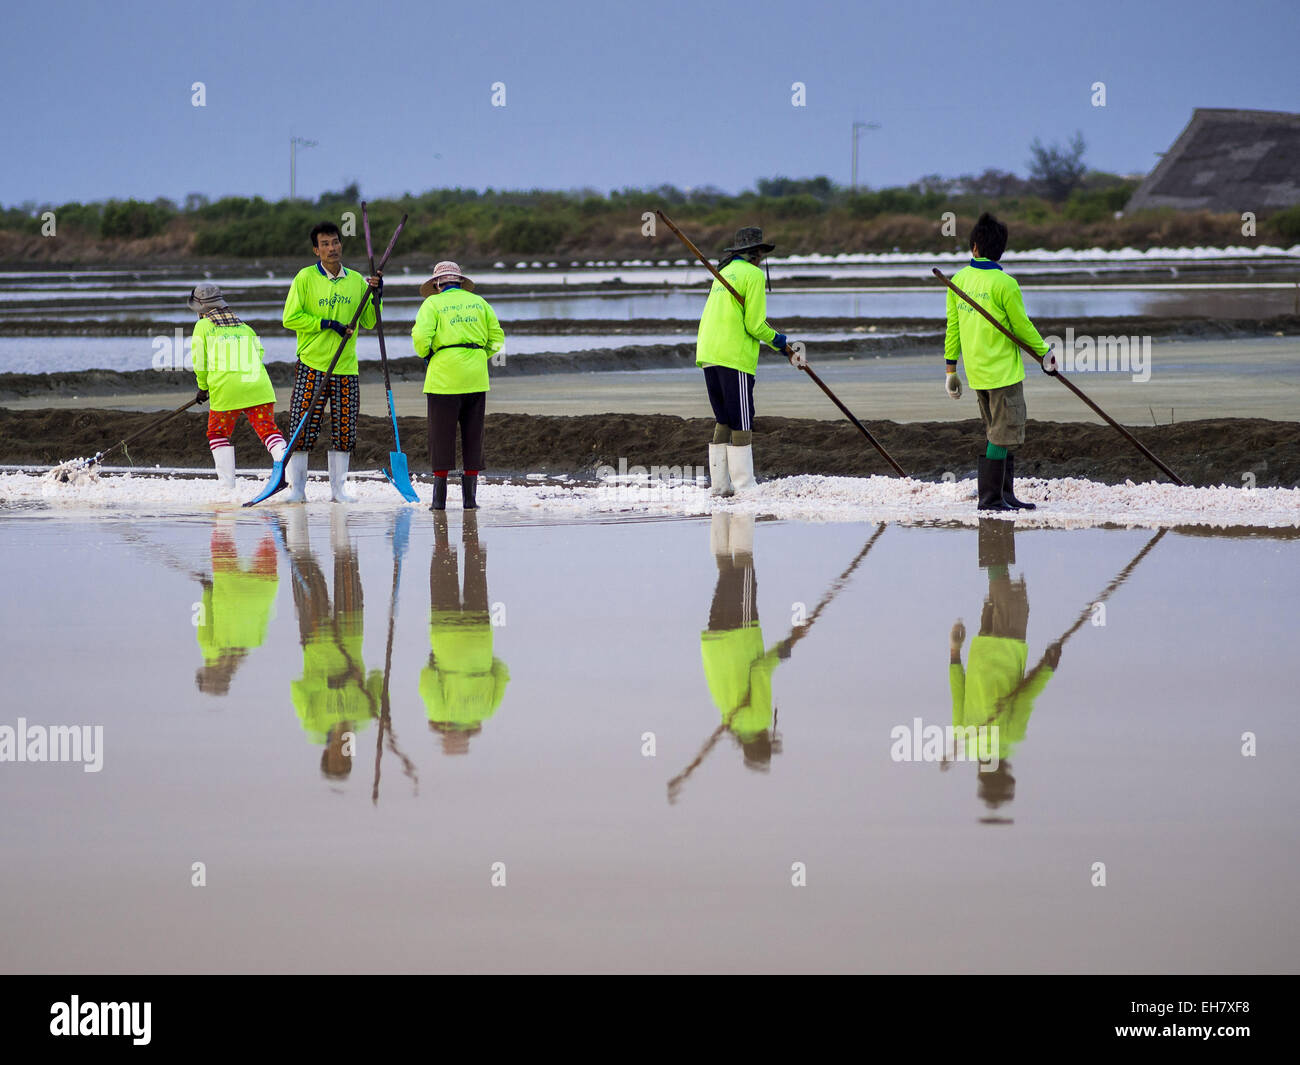 Samut Sakhon Thailand  city photos gallery : Na Khok, Samut Sakhon, Thailand. 9th Mar, 2015. Workers On A Salt ...